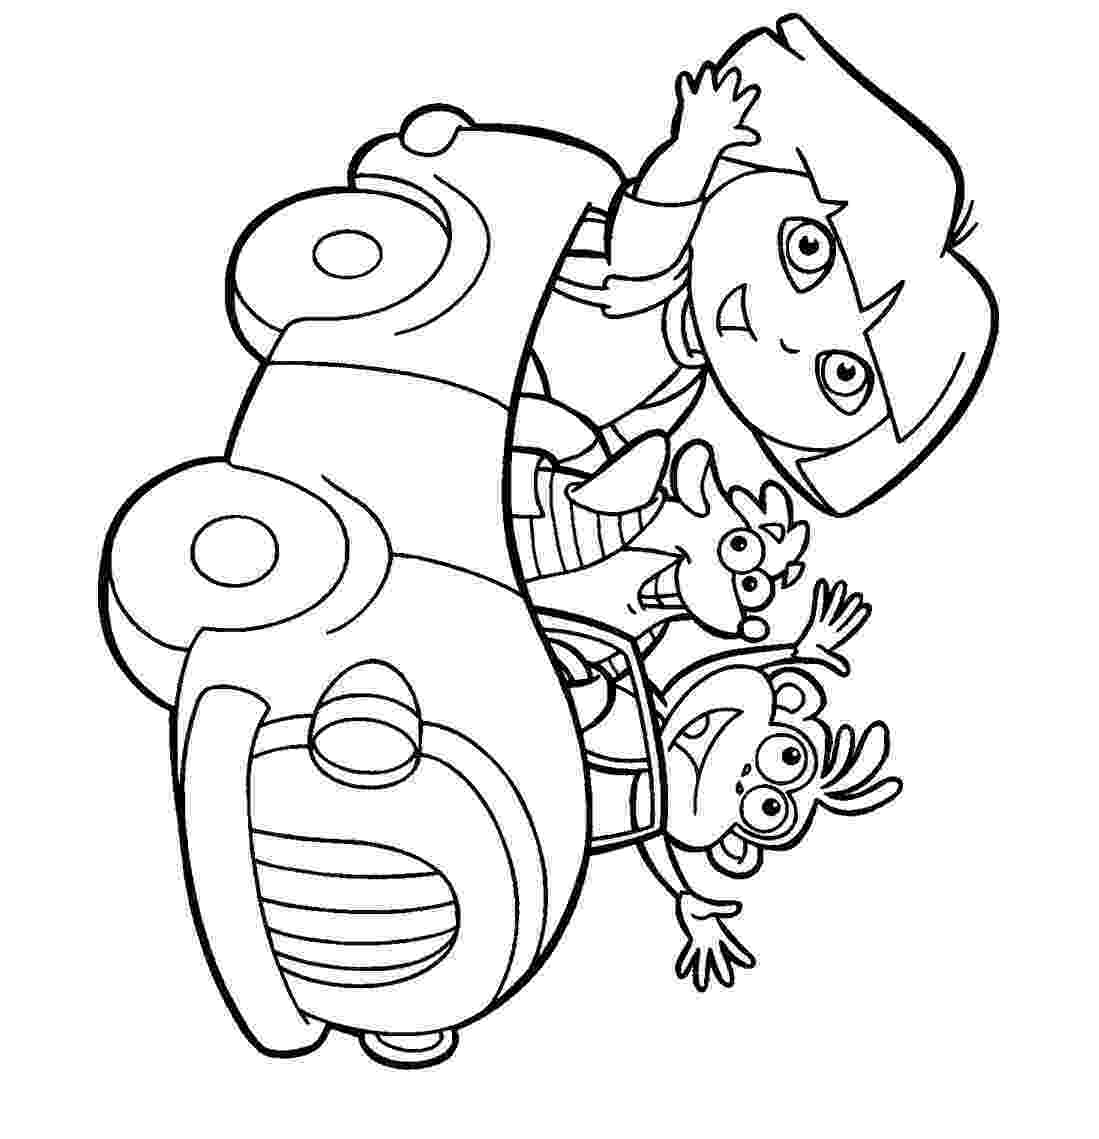 cool coloring pages spongebob coloring pages free printable coloring pages coloring pages cool